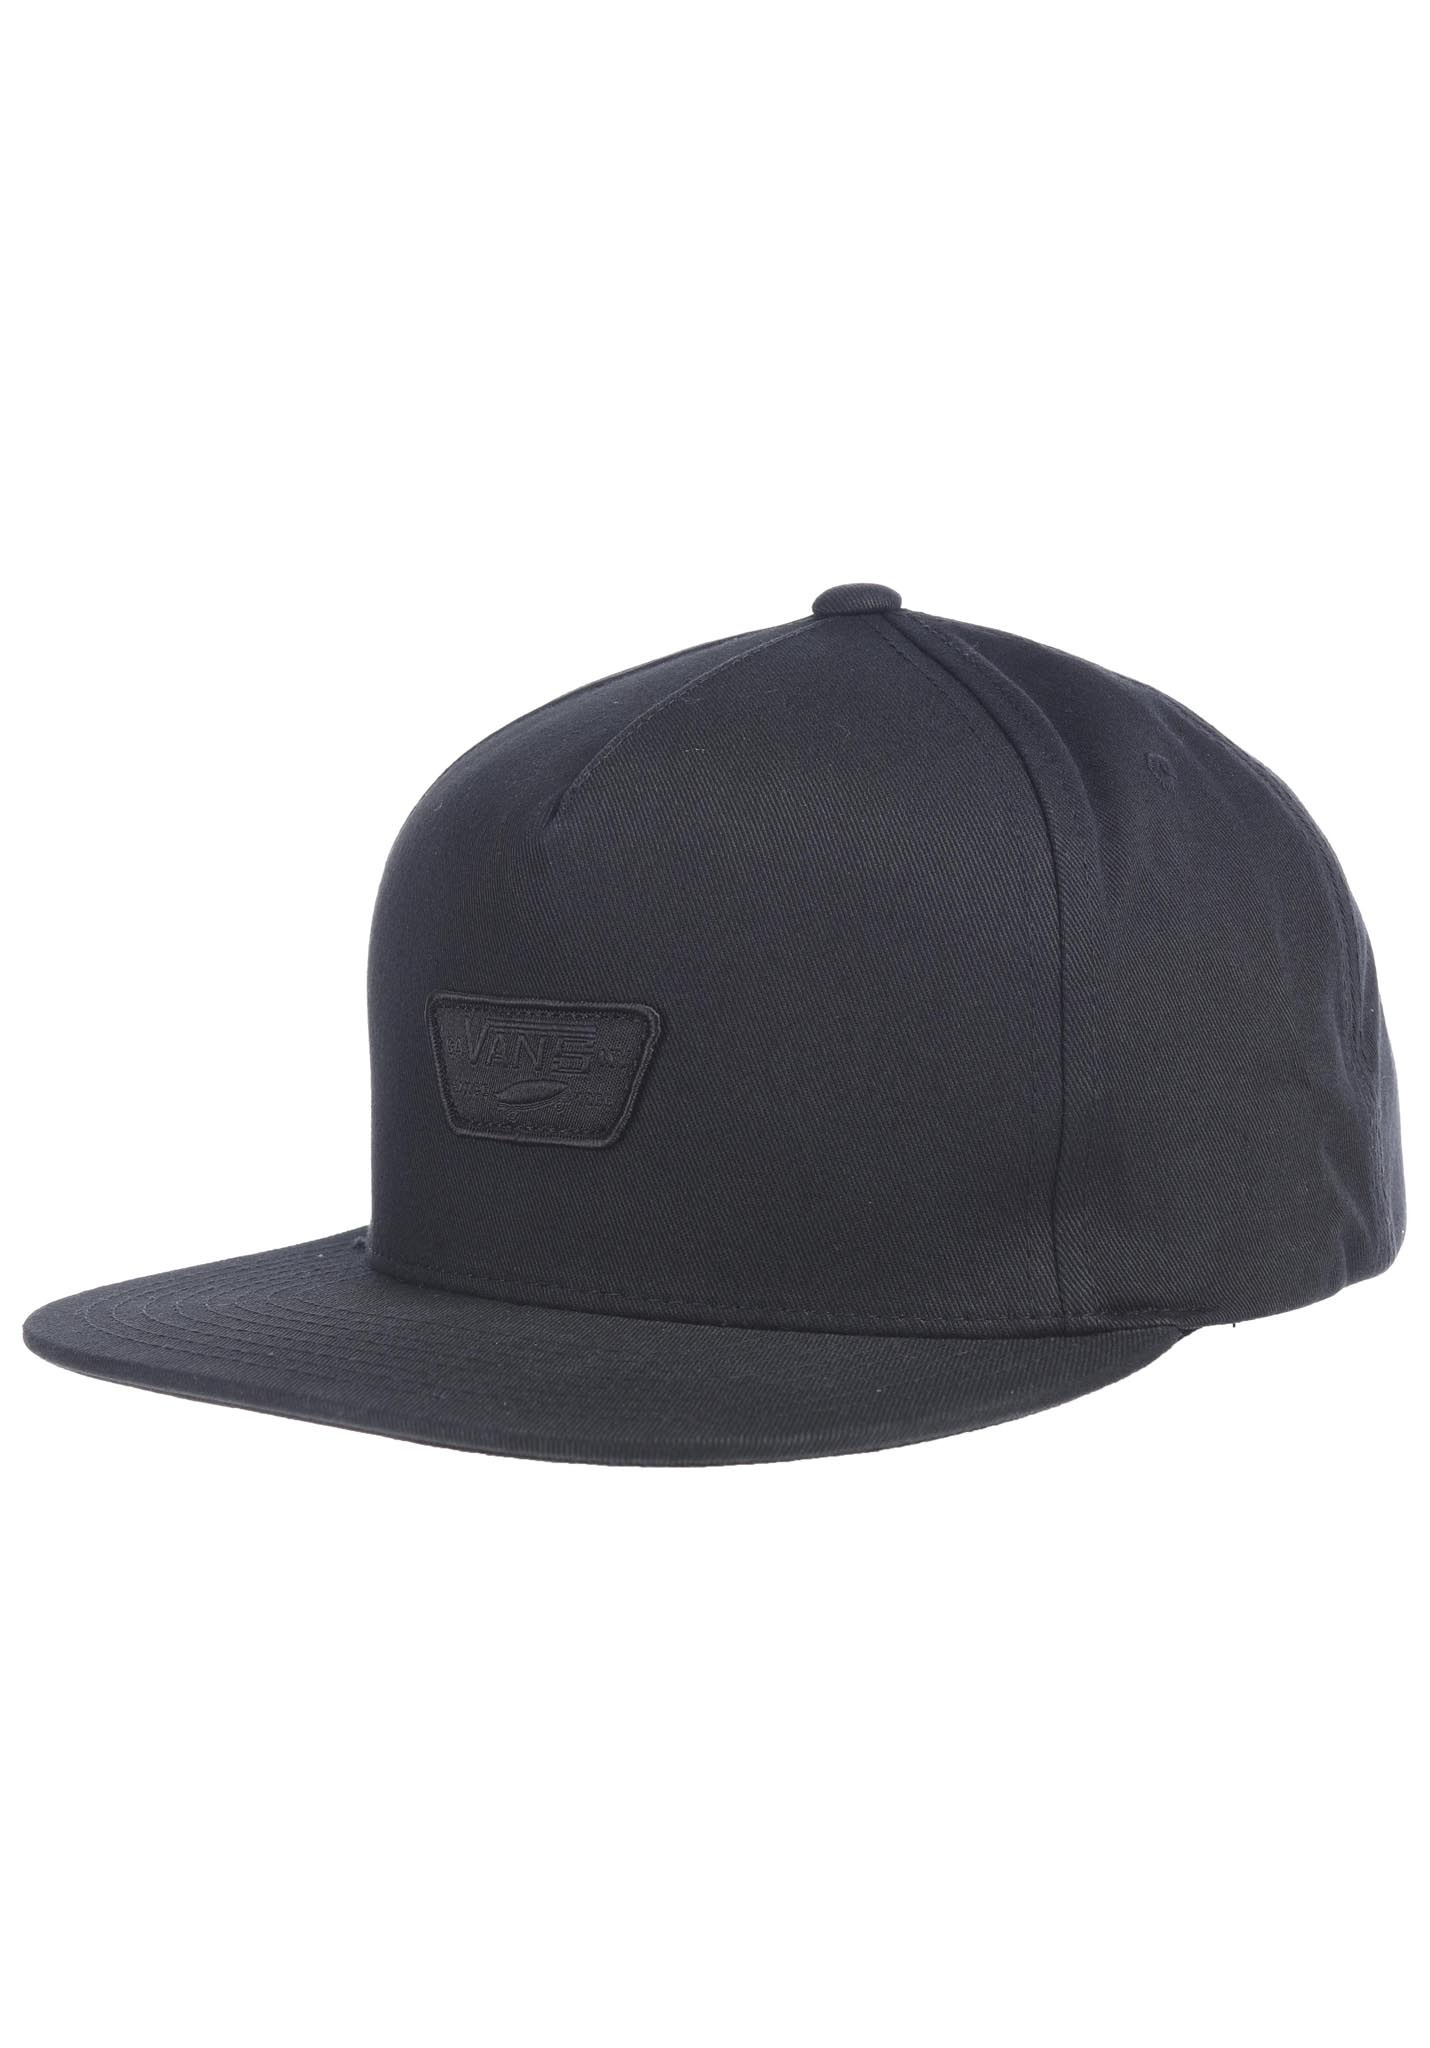 651d63c7a7a Vans Mini Full Patch II - Snapback Cap for Men - Black - Planet Sports